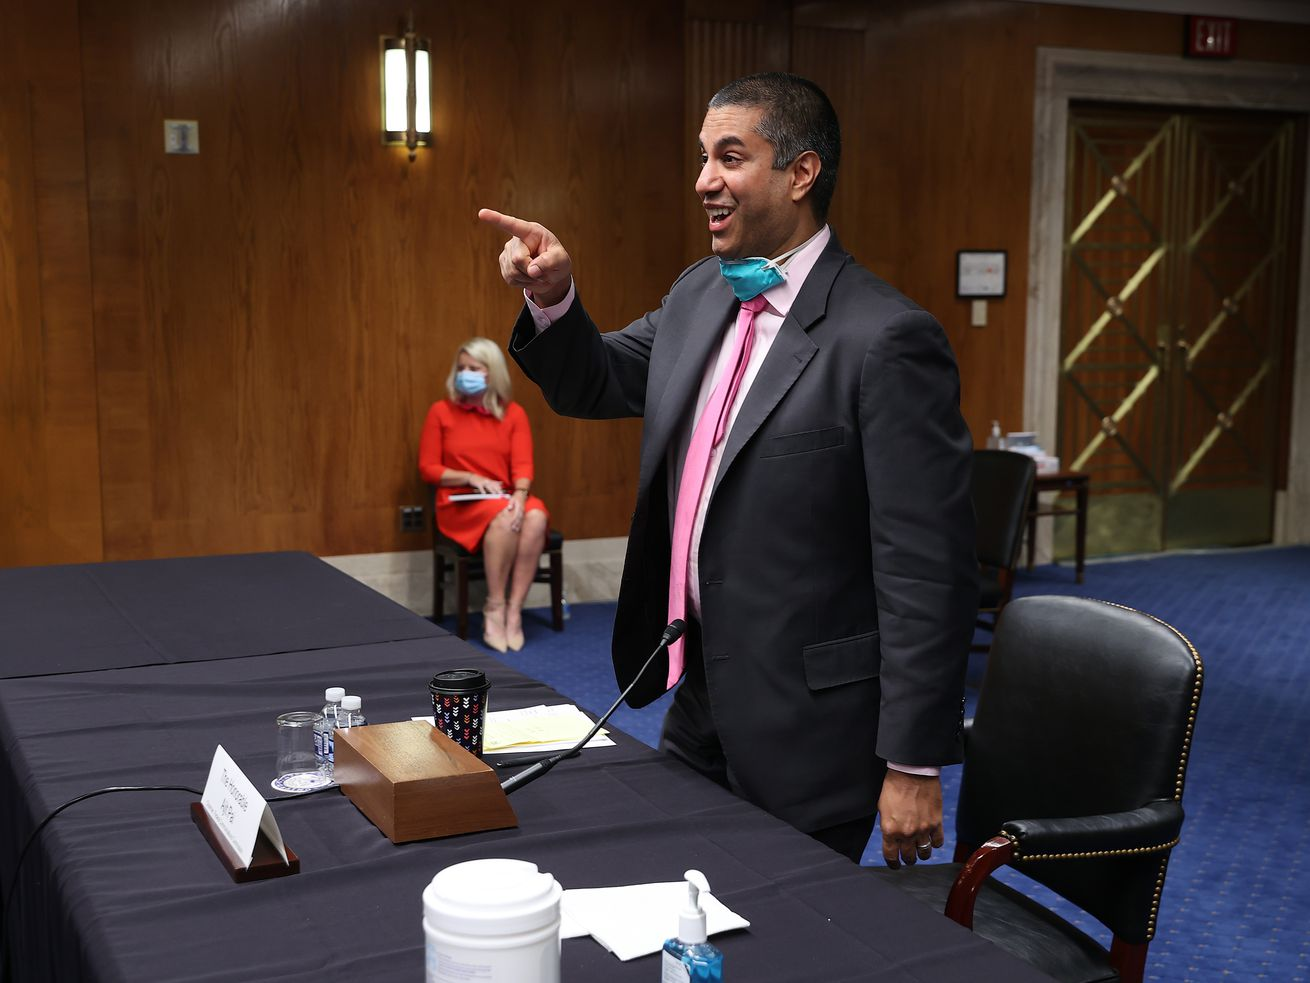 Ajit Pai, Trump's FCC chair who repealed net neutrality, is leaving on January 20